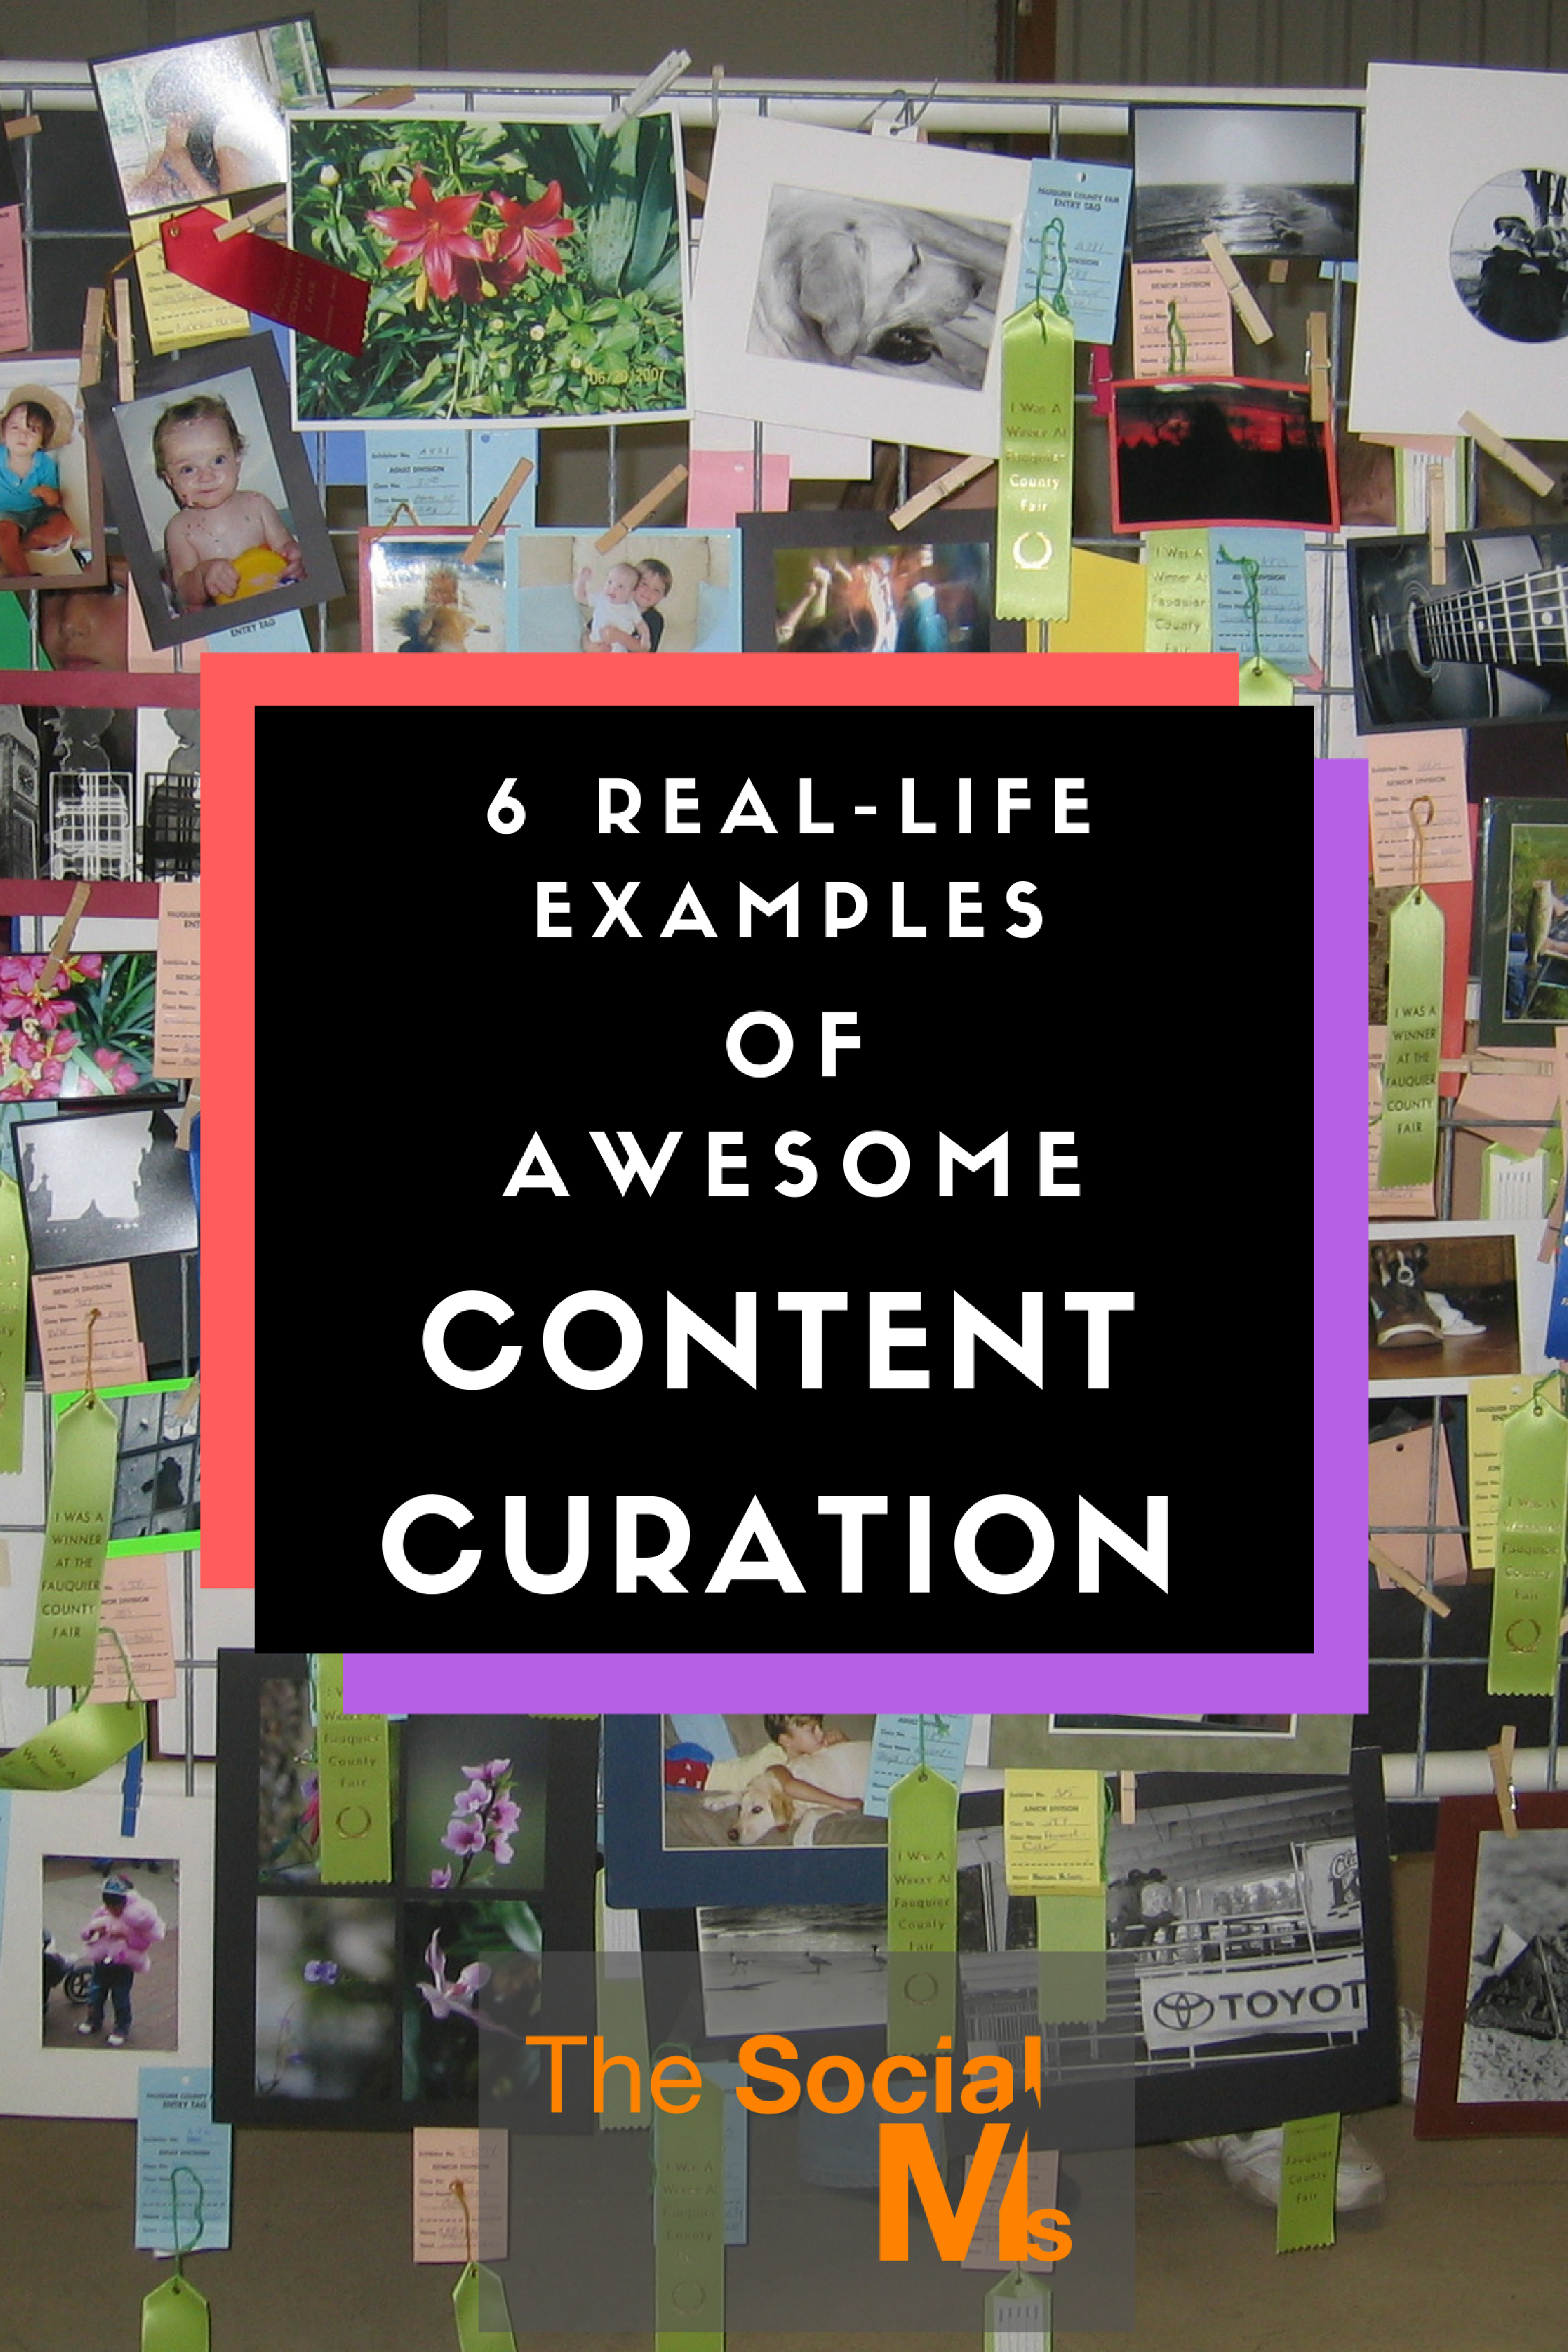 These examples of real life content curation to inspire thoughts and discussions about what content curation really is and how it can and should be used